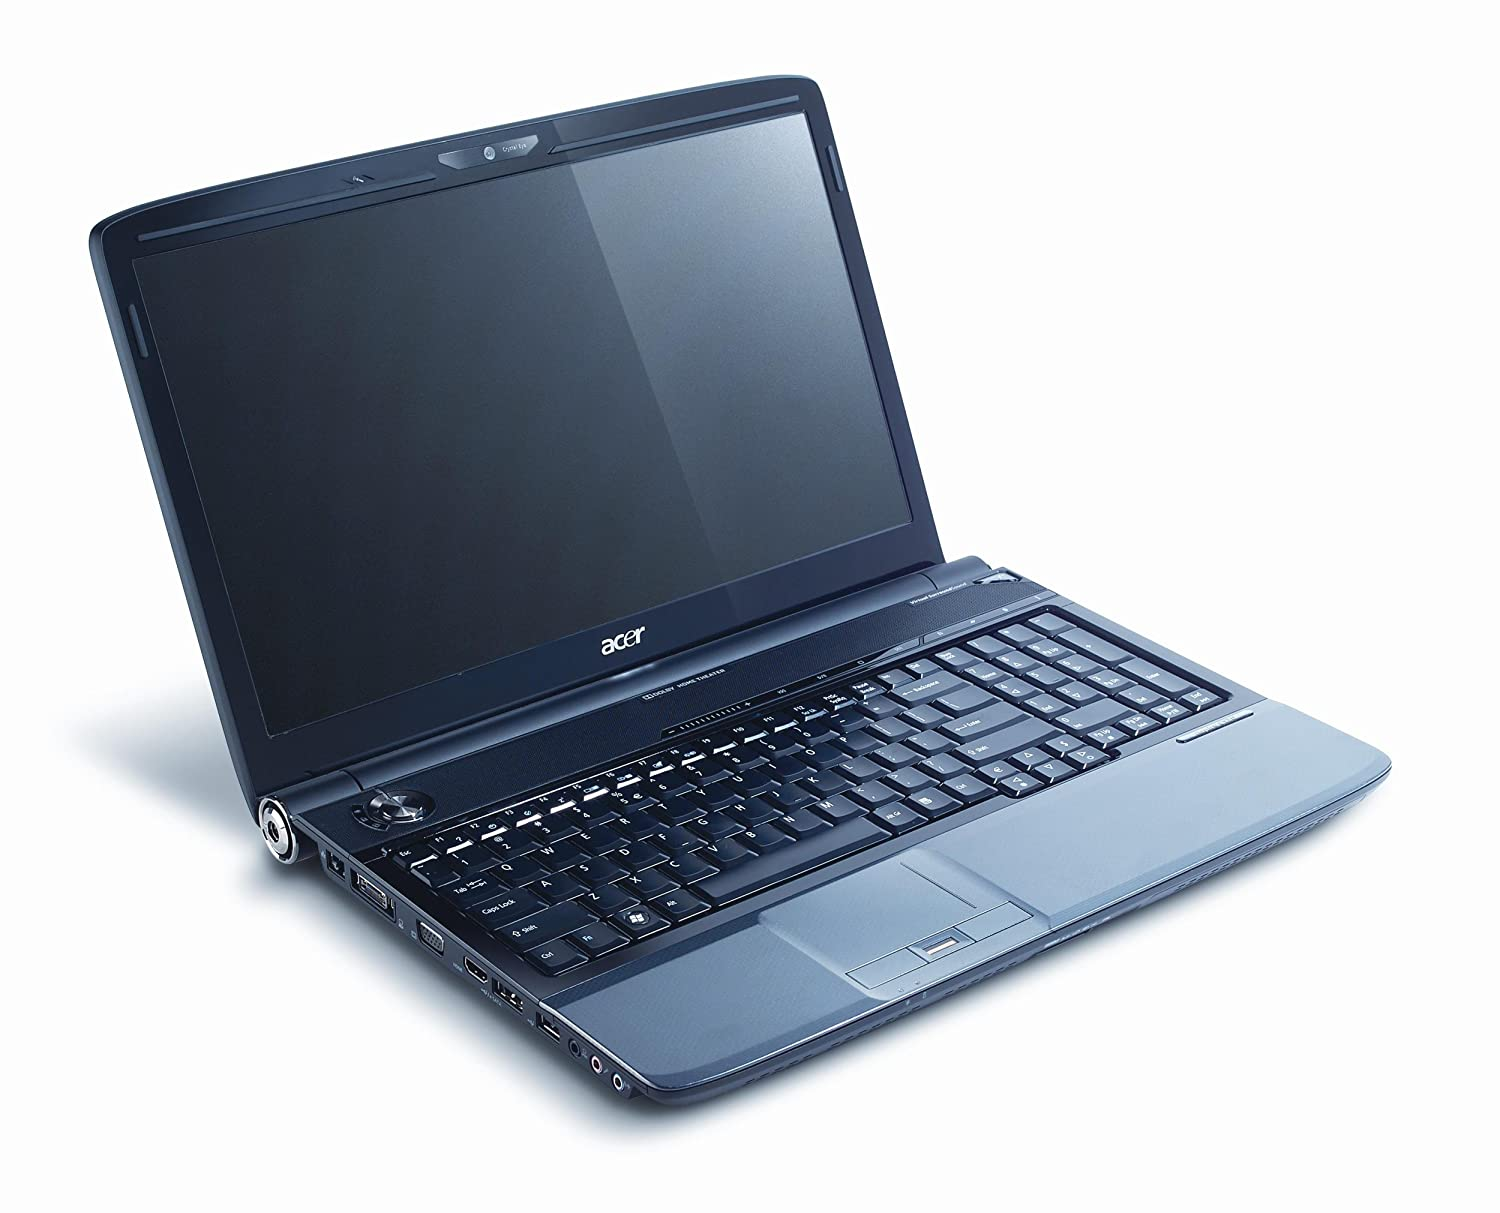 ACER AS6530G WINDOWS DRIVER